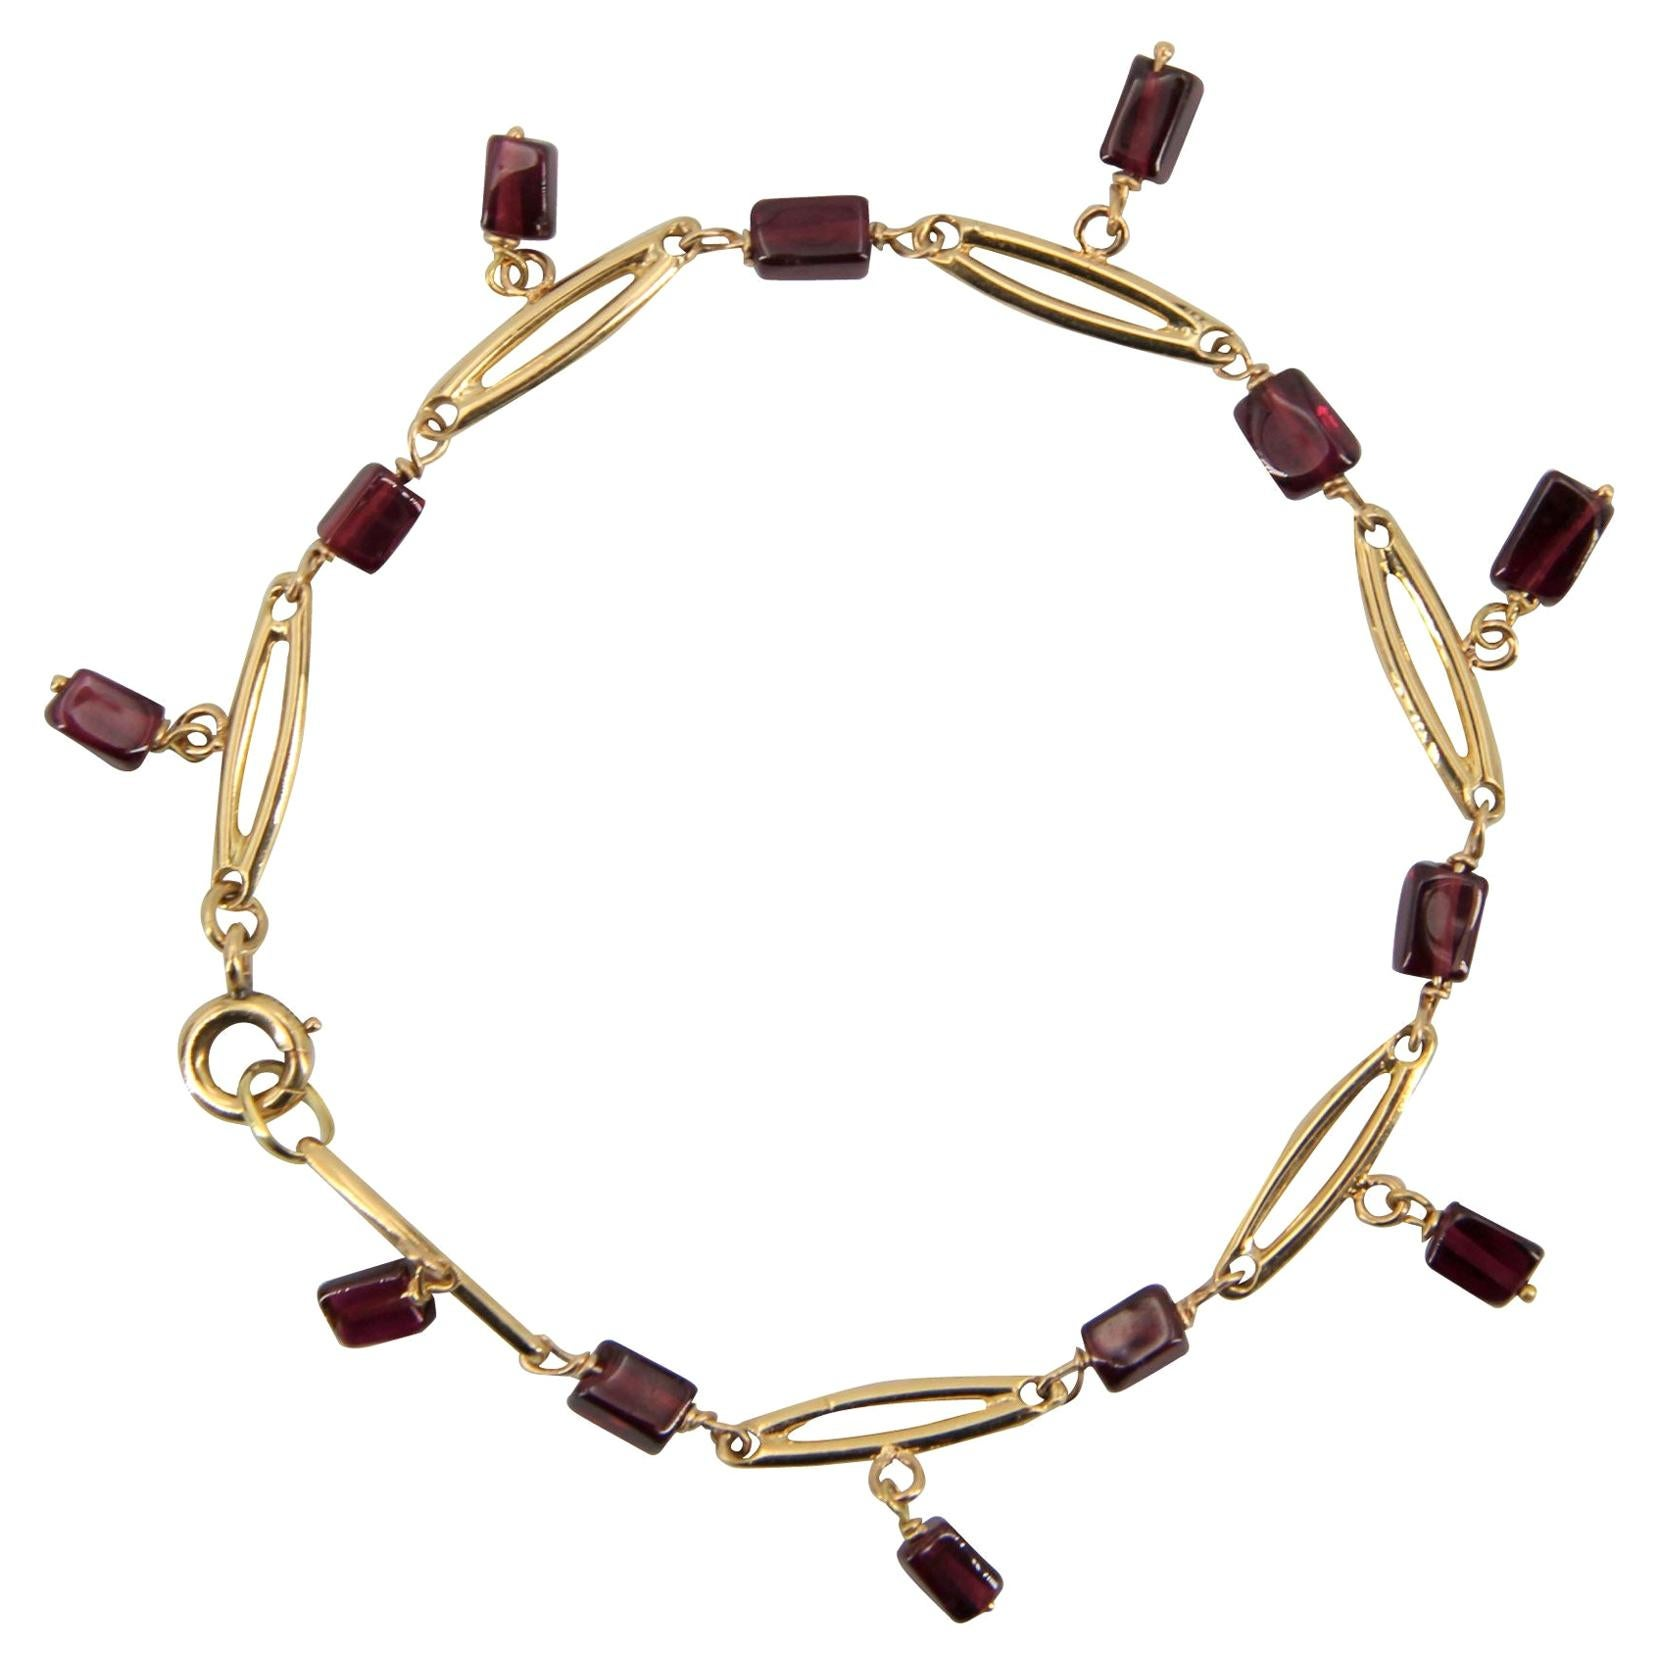 French 1900s Garnet 18 Karat Yellow Gold Bracelet